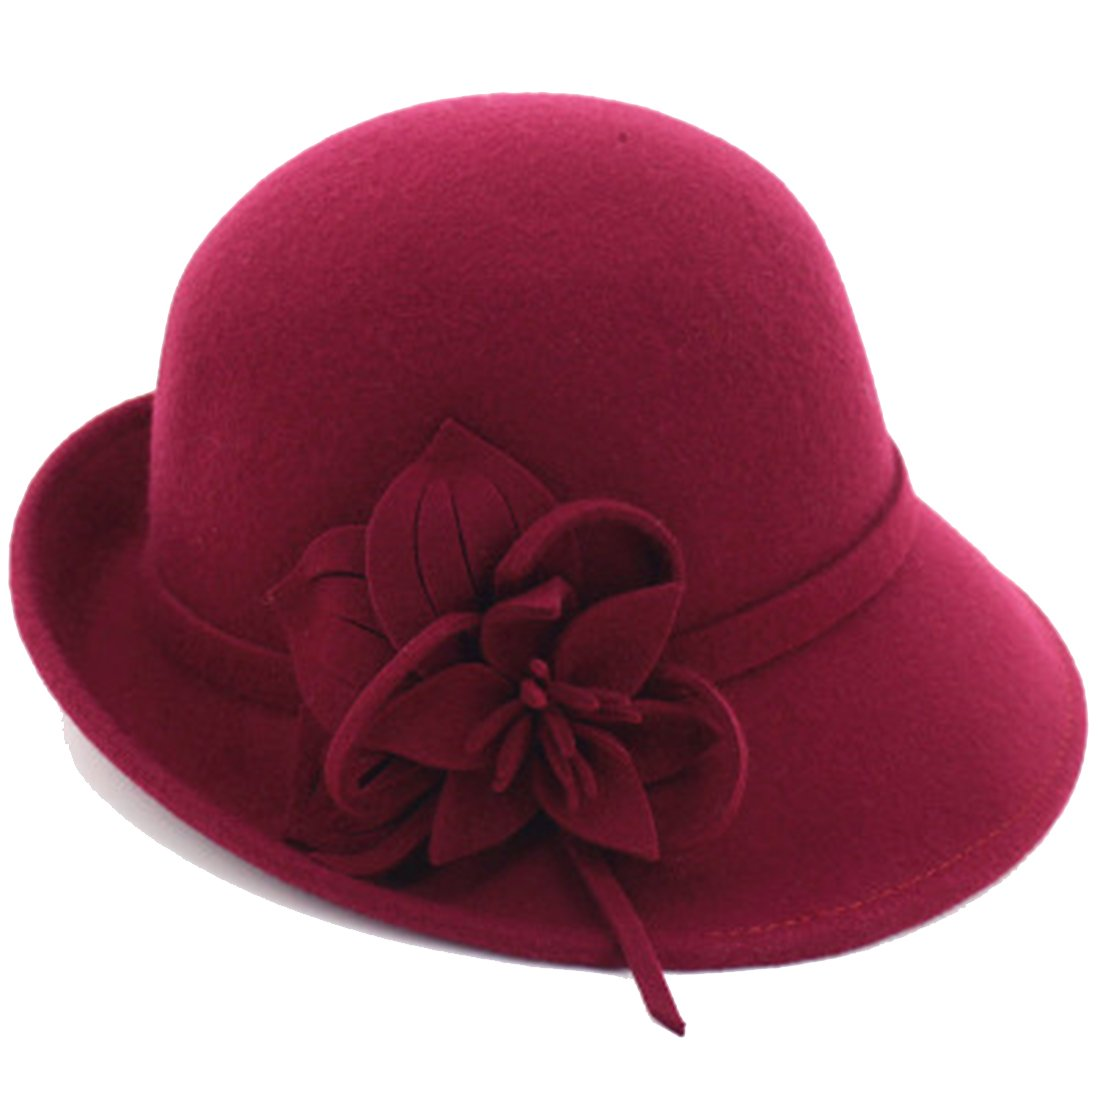 Young_Me Women's Floral Trimmed Wool Blend Cloche Winter Hat (Model B - Wine Red) by Young_Me